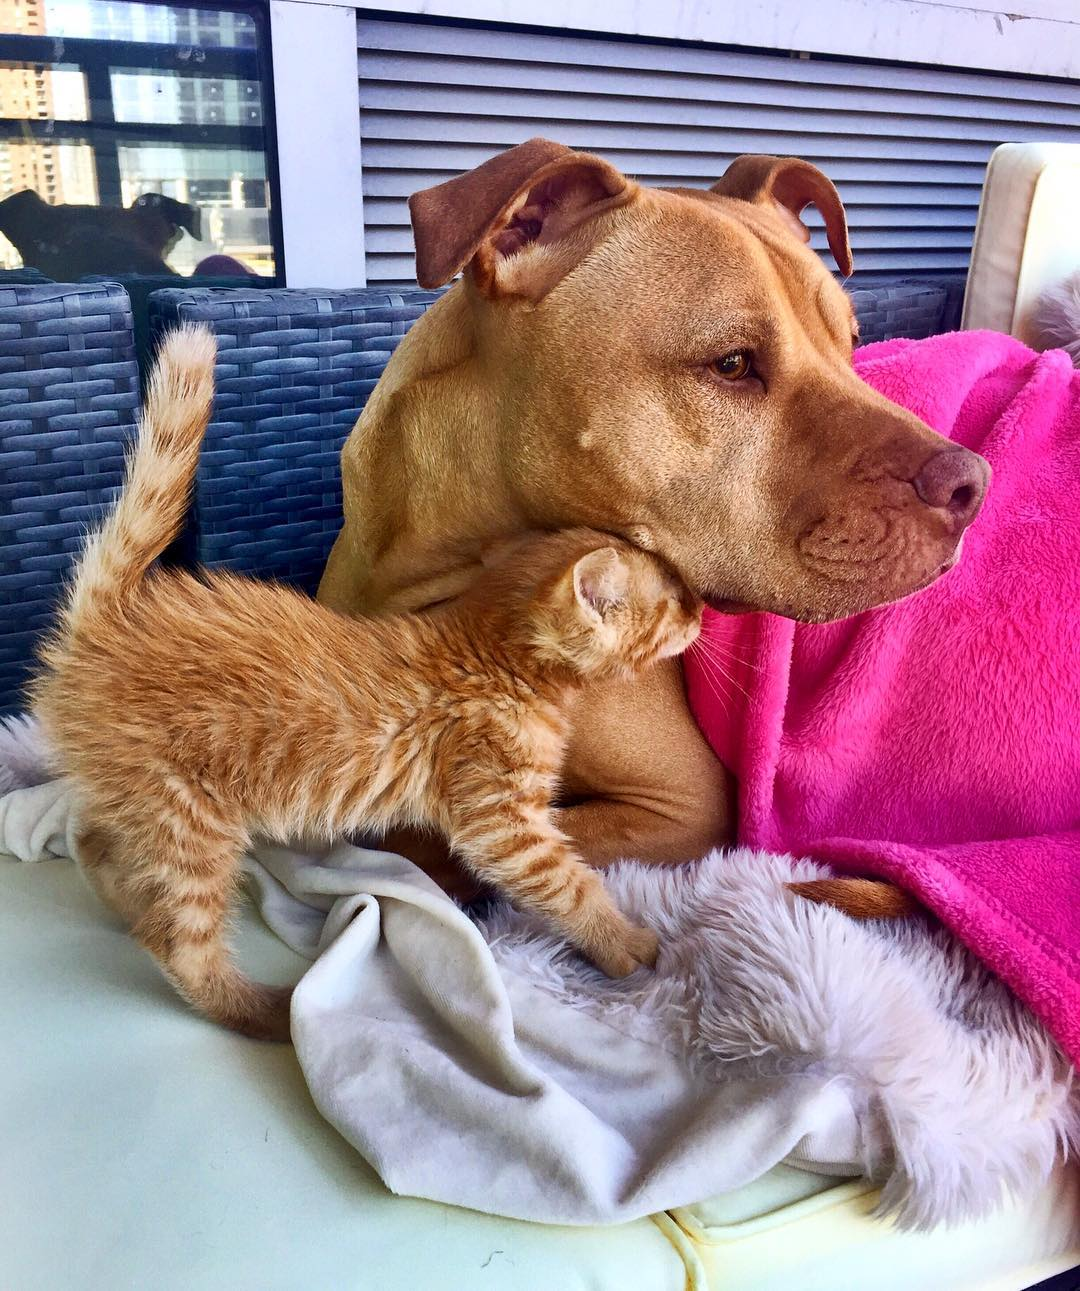 Rescued pit bull made friends with a kitten 09